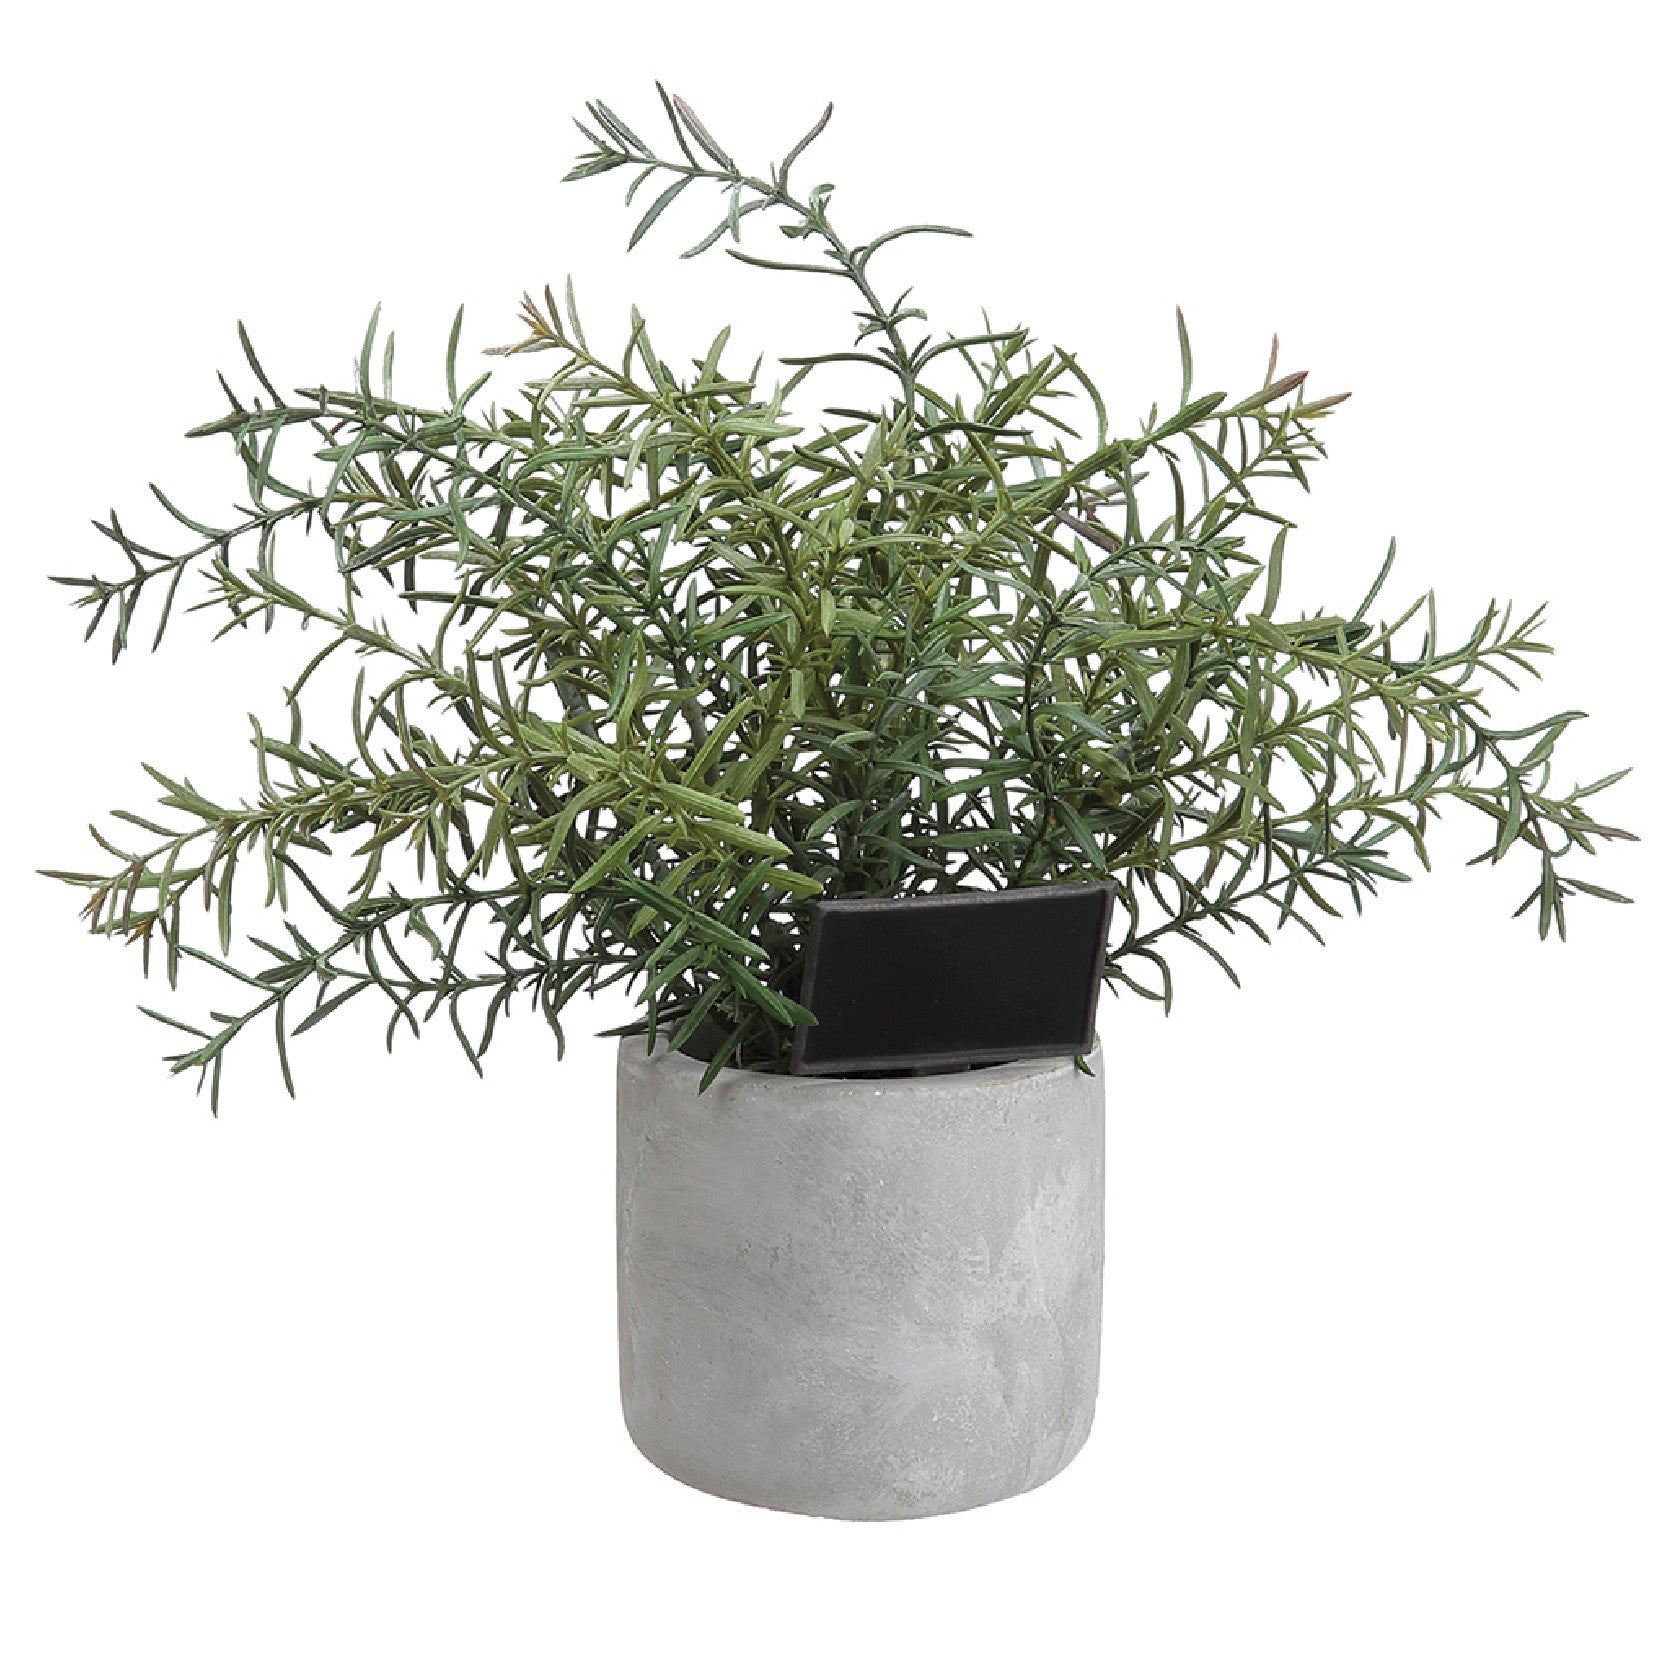 Rosemary in Cement Pot!